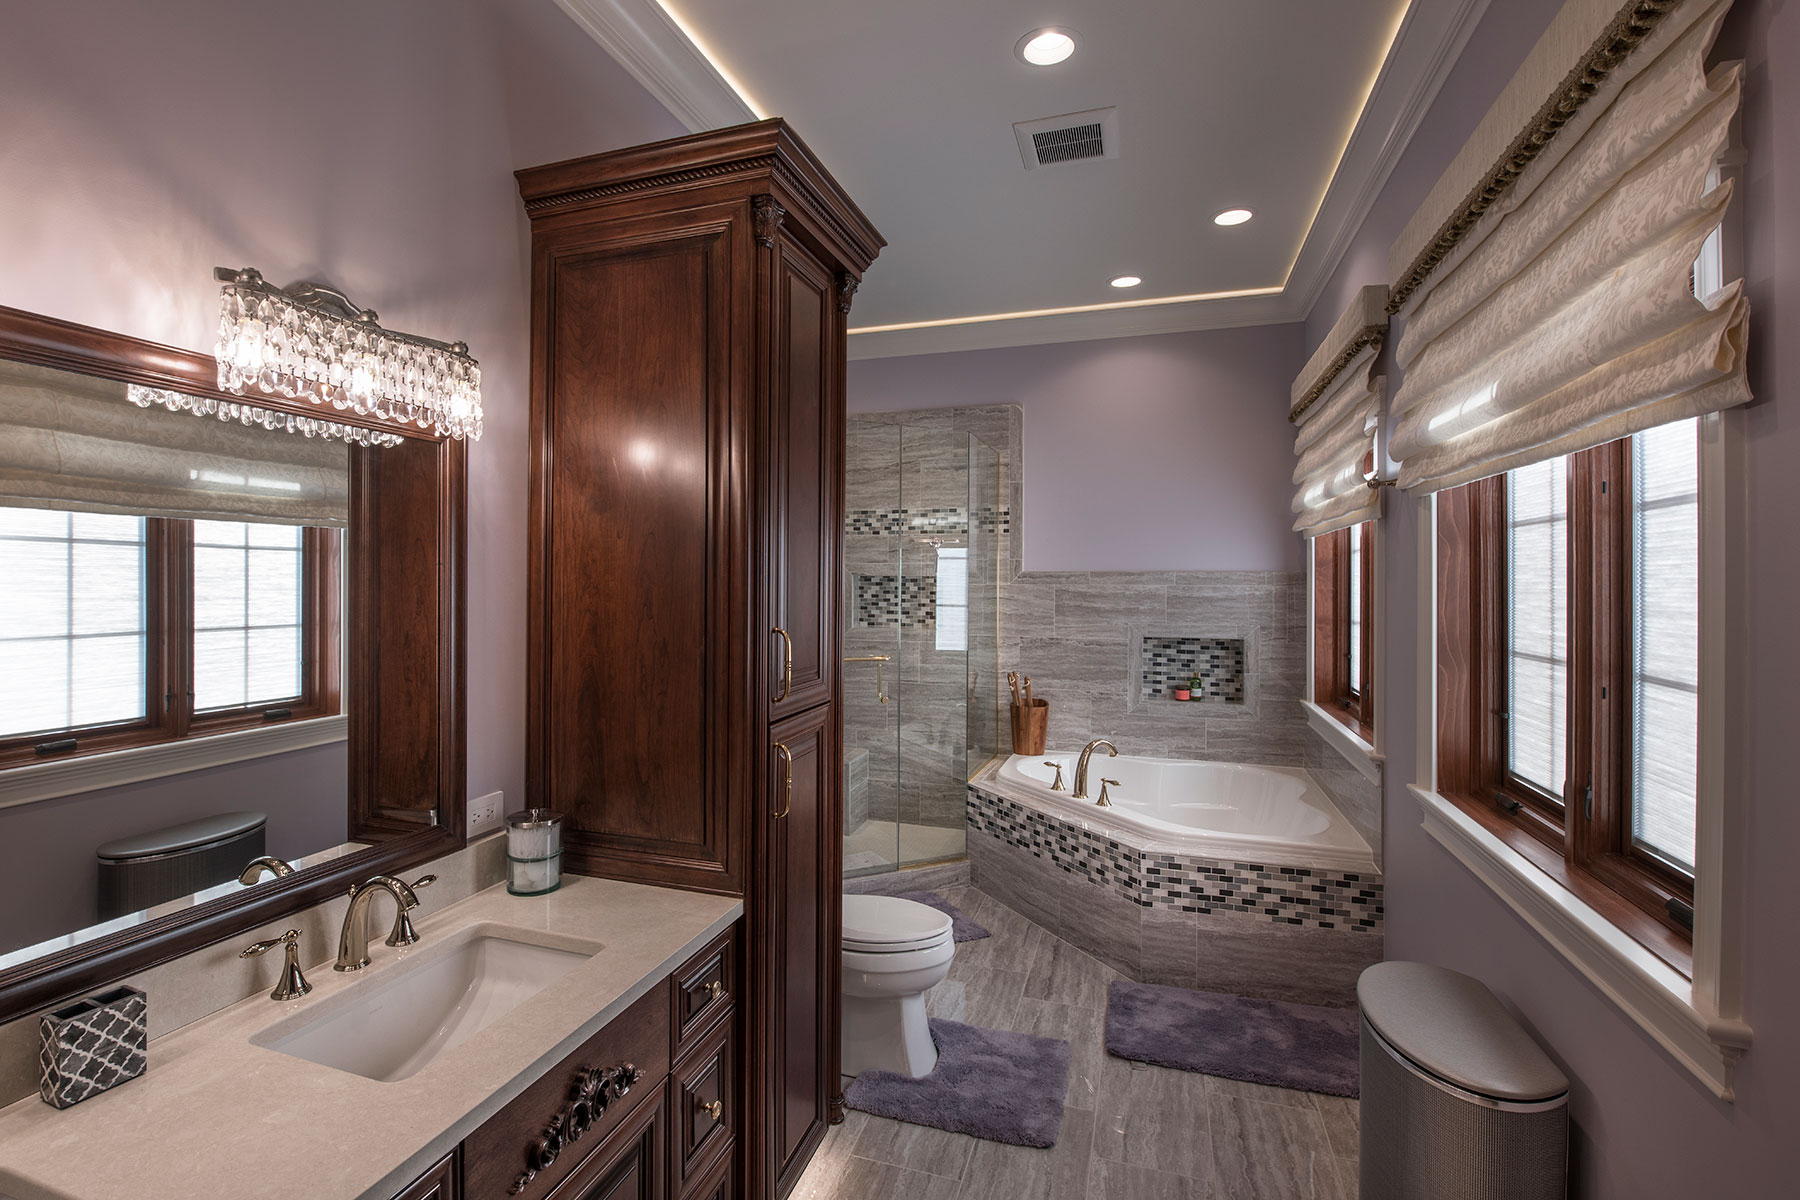 Wall Decor, Great Room - Mango Ave., Morton Grove, IL Custom Home. America's Custom Home Builders: New Construction, Remodeling, Restoration Services. Residential and Commercial.